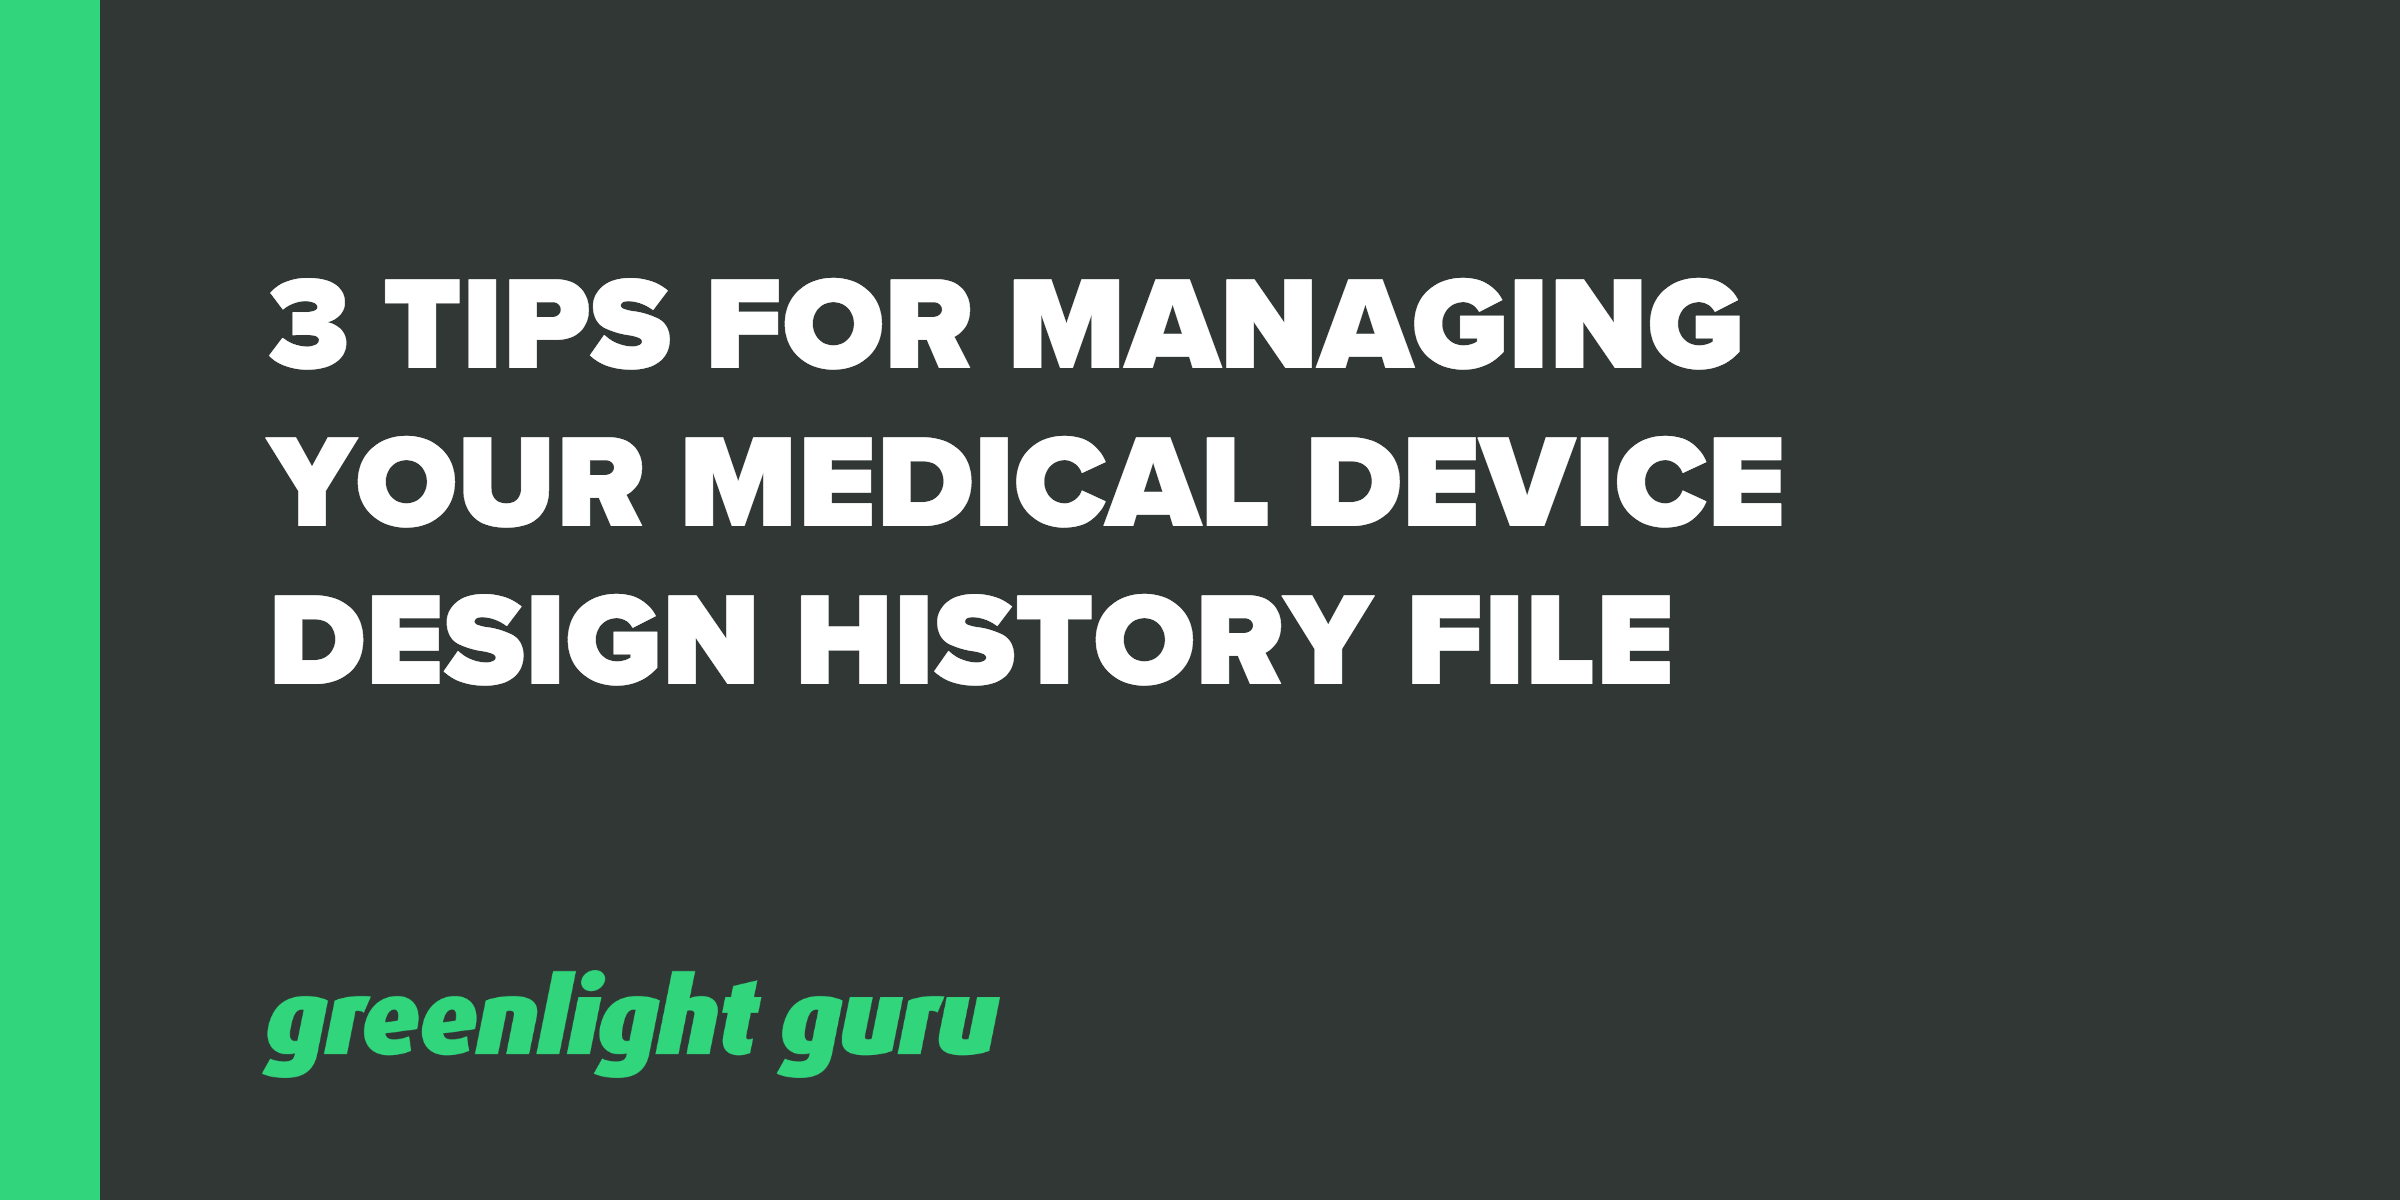 3 Tips for Managing Your Medical Device Design History File - Featured Image